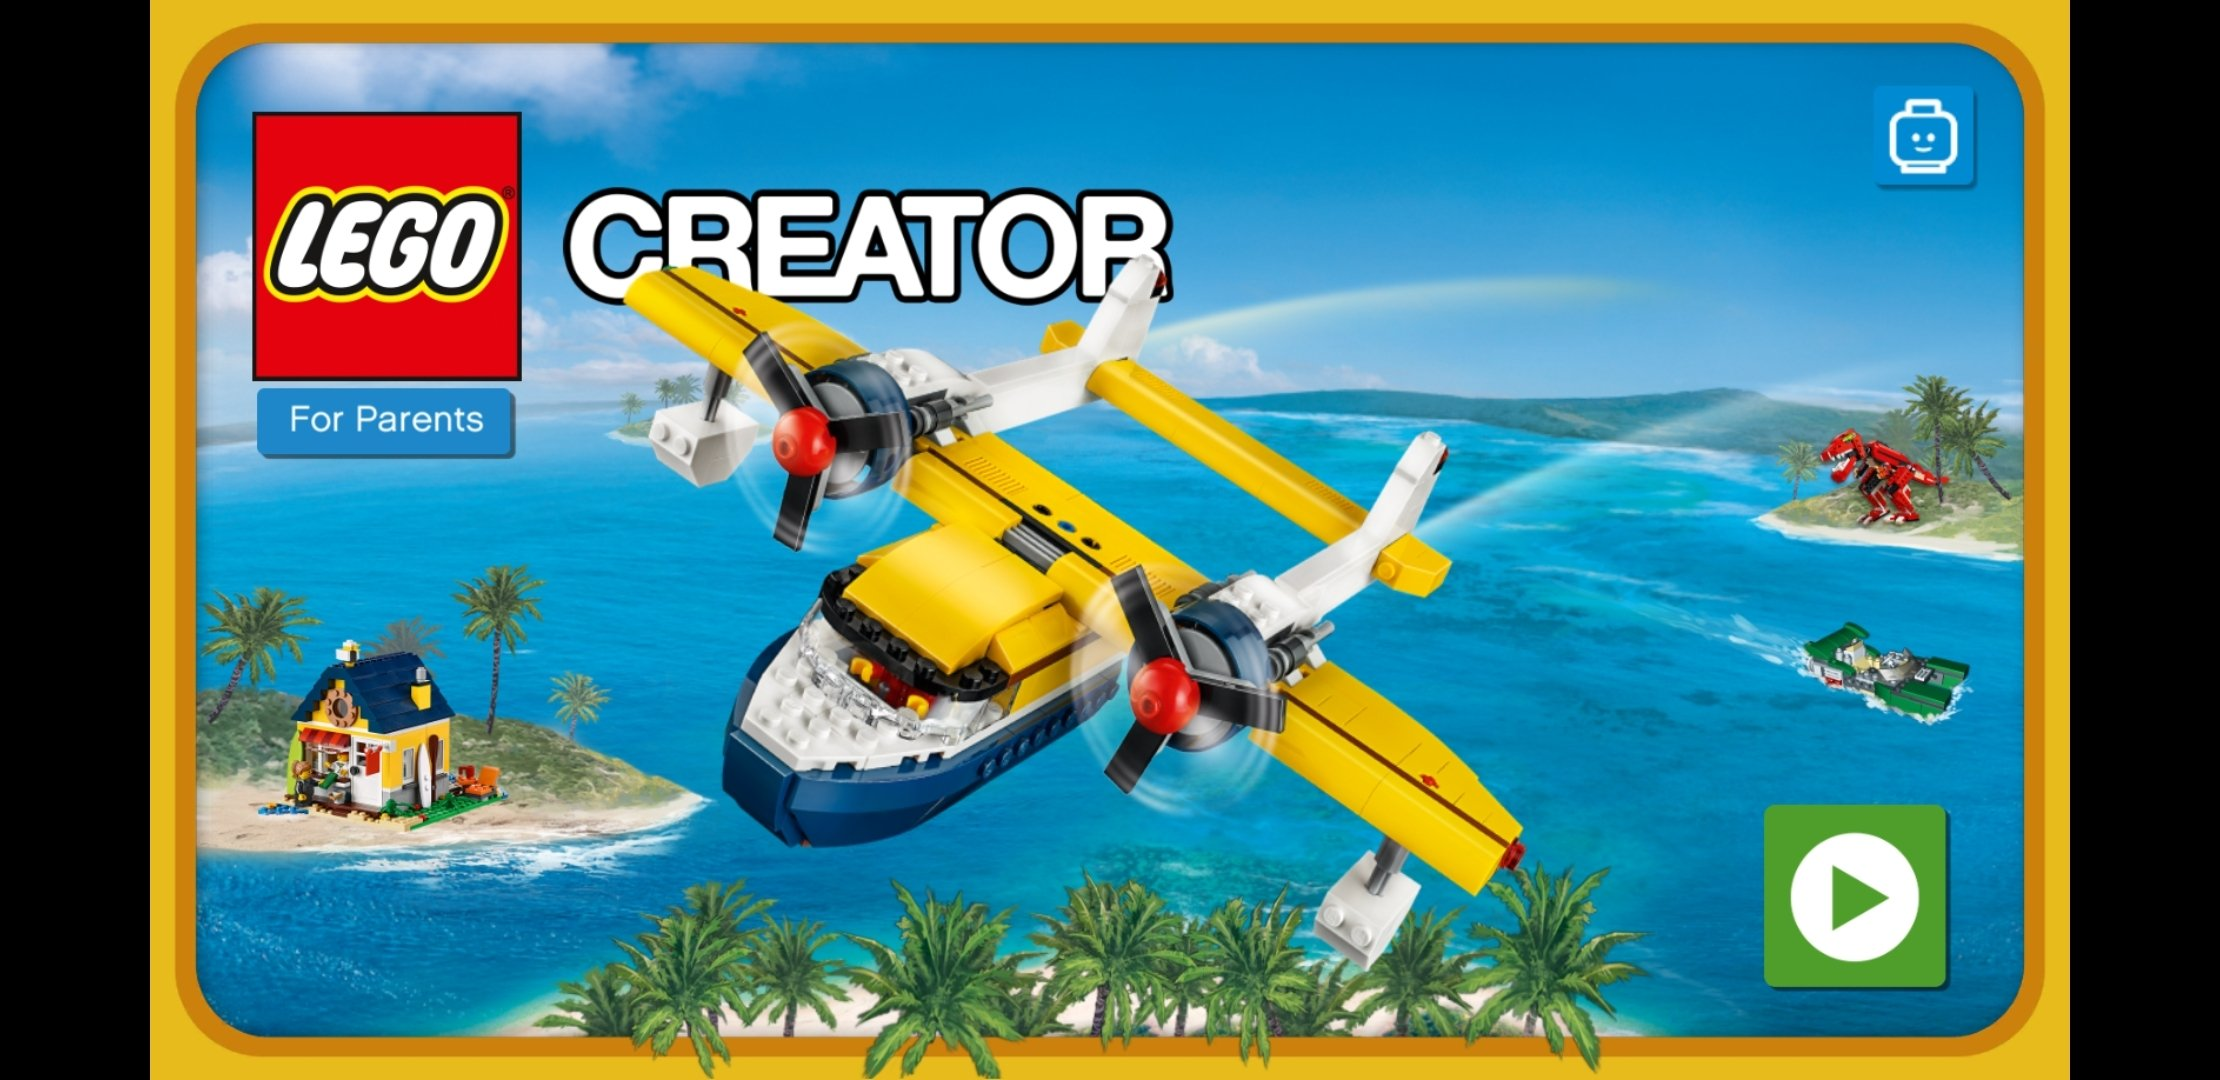 LEGO Creator Islands 3 0 0 - Download for Android APK Free